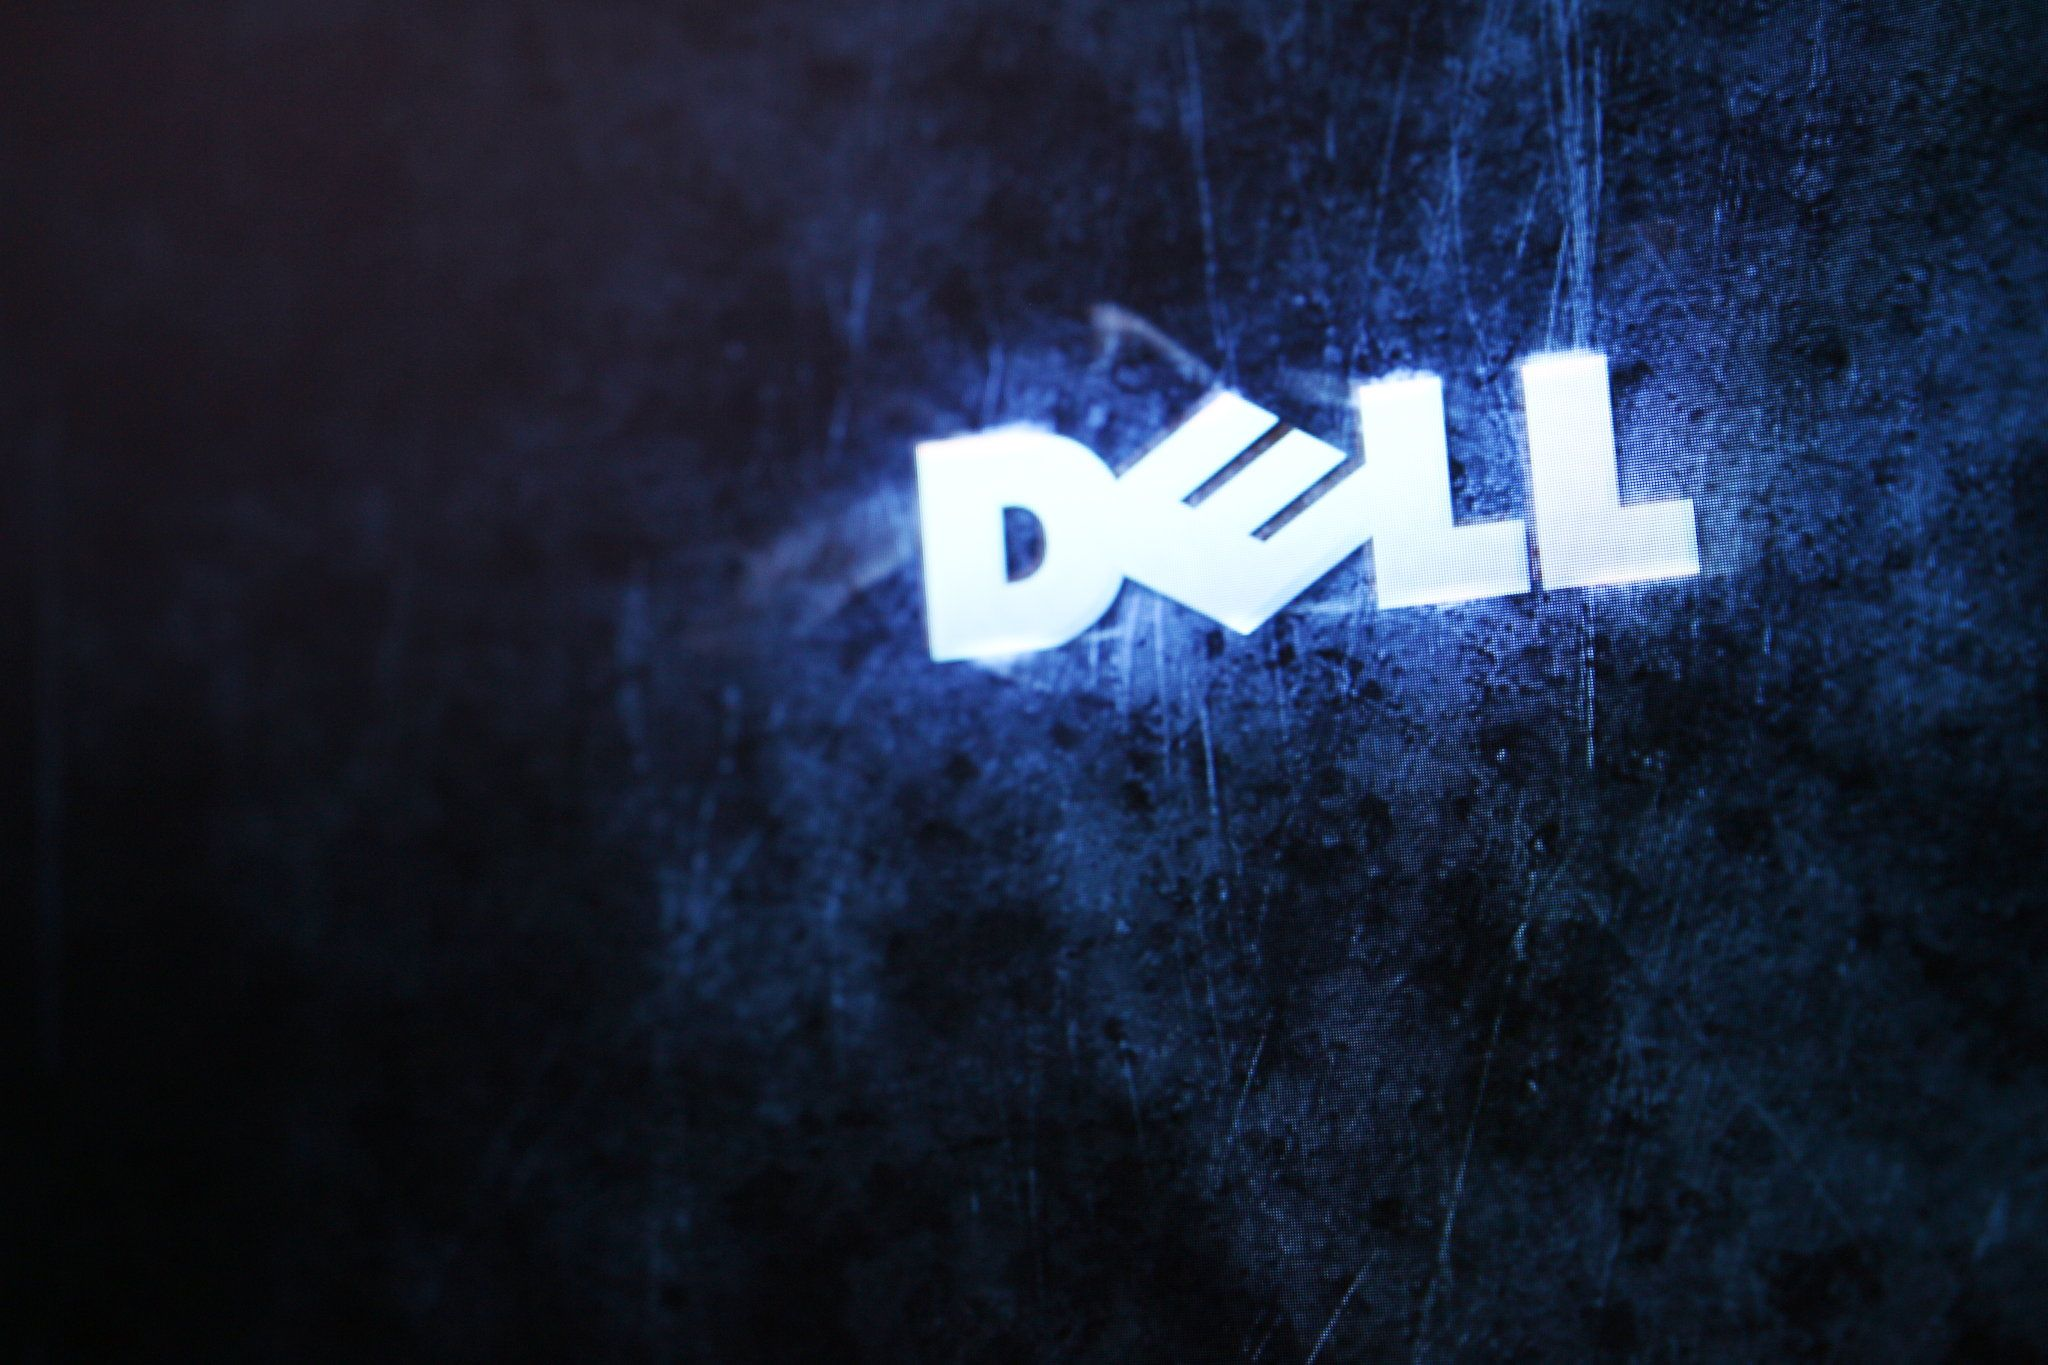 Hd dell backgrounds dell wallpaper images for windows hd hd dell backgrounds dell wallpaper images for windows voltagebd Image collections